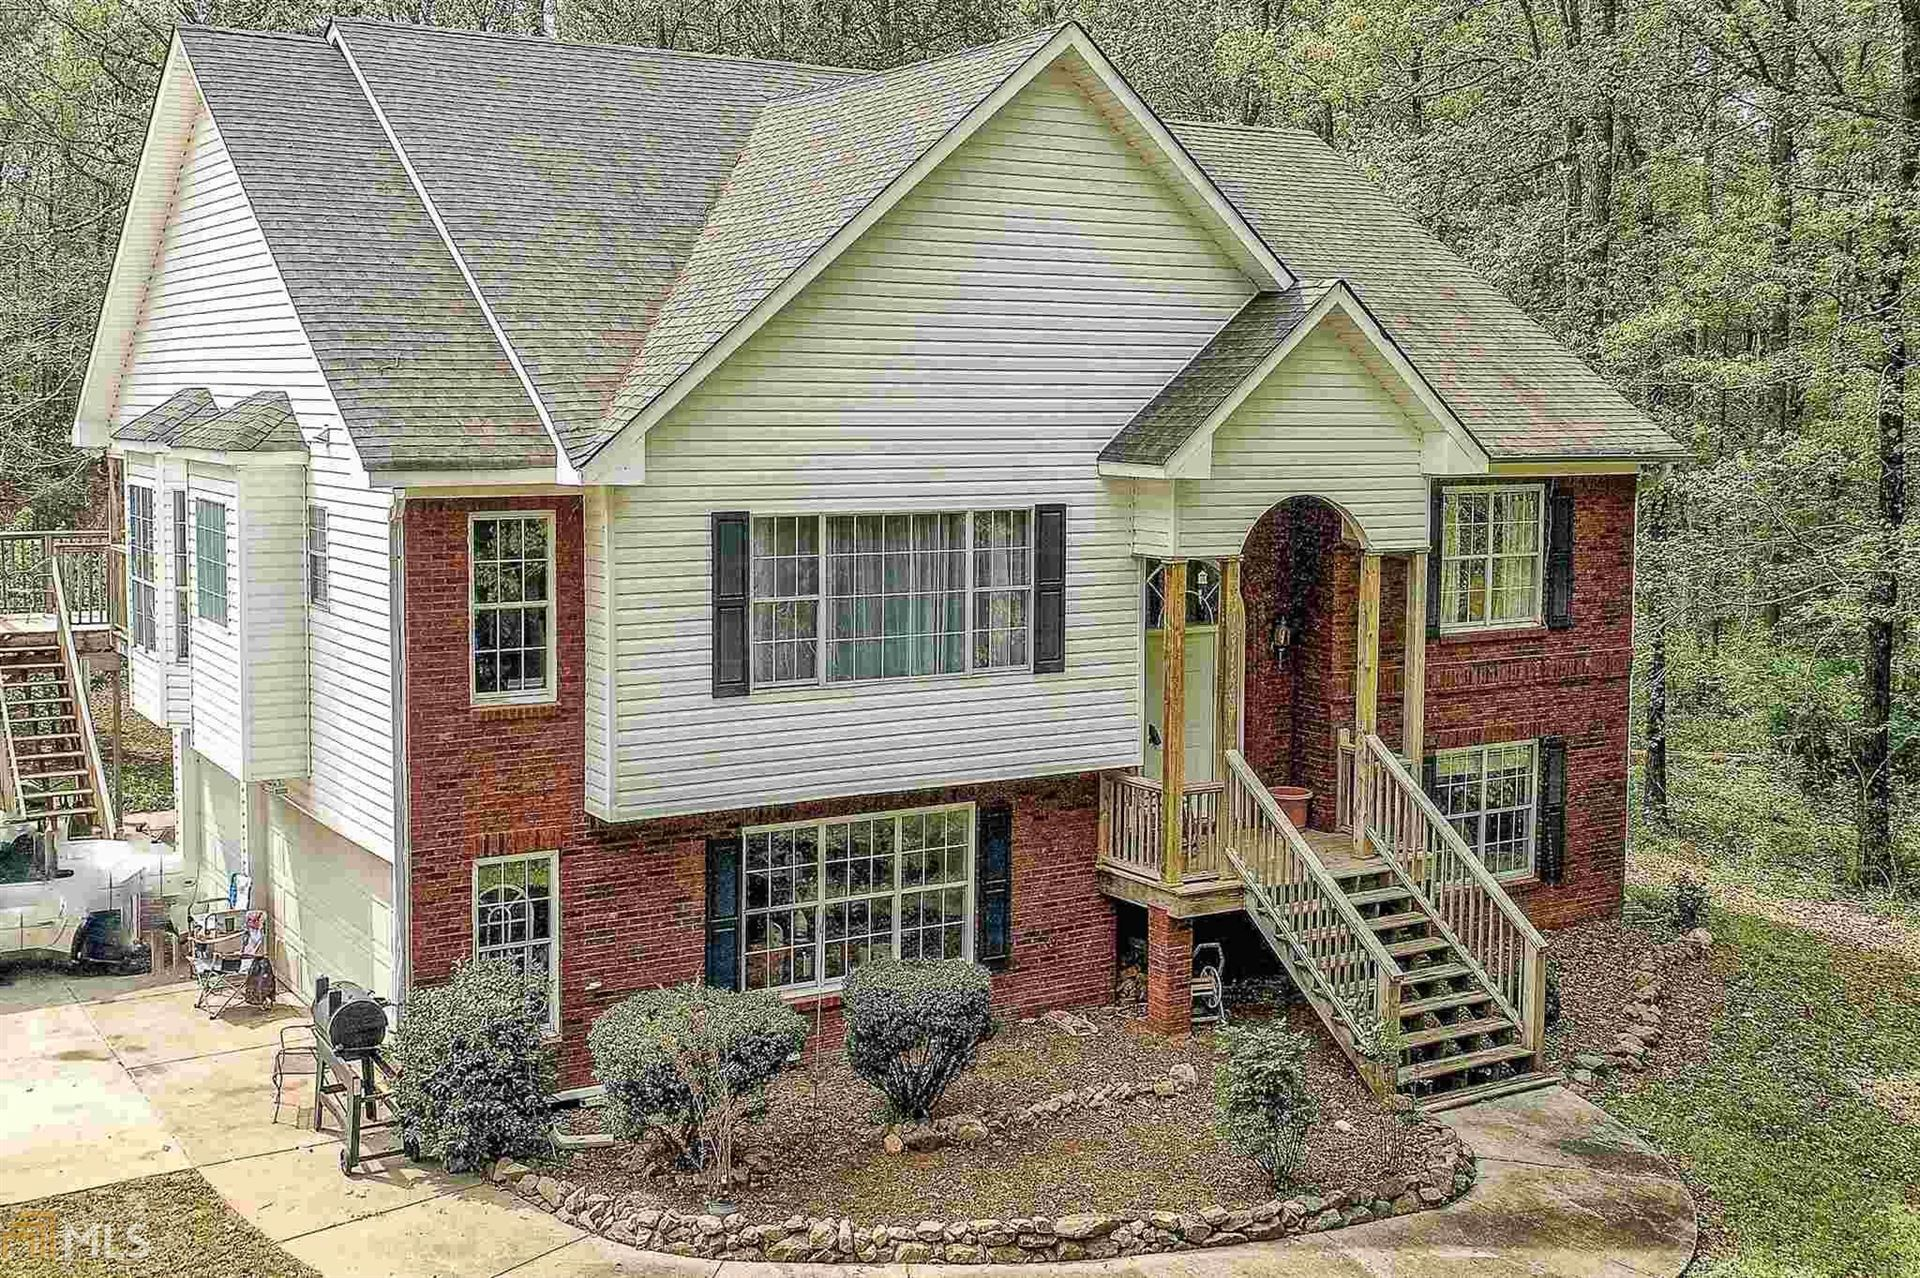 123 Goldfinch Dr, Covington, GA 30016 - #: 8787090